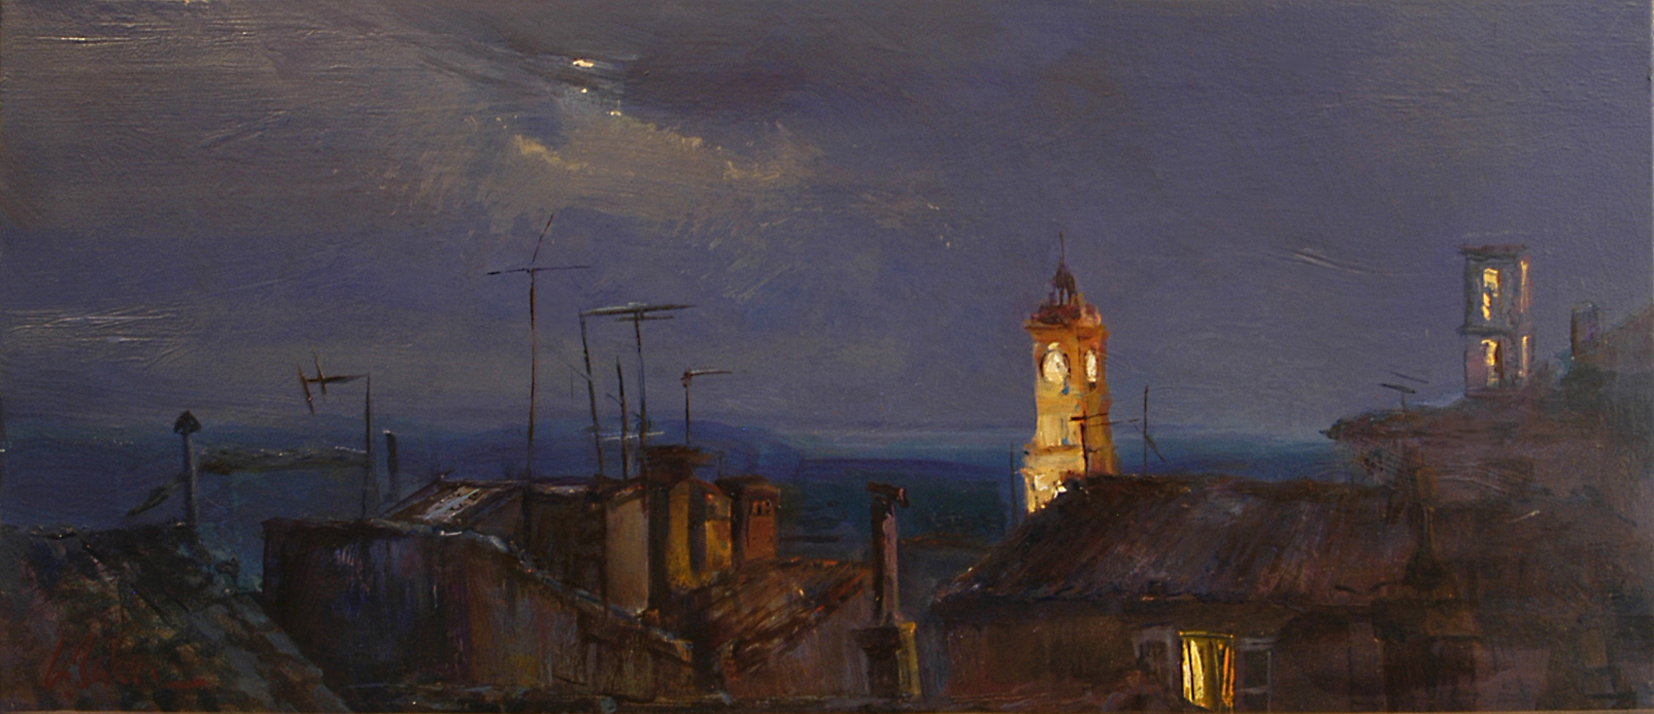 Light Sources, Grasse by Night - oil on canvas - 33 x 80 cm - SOLD